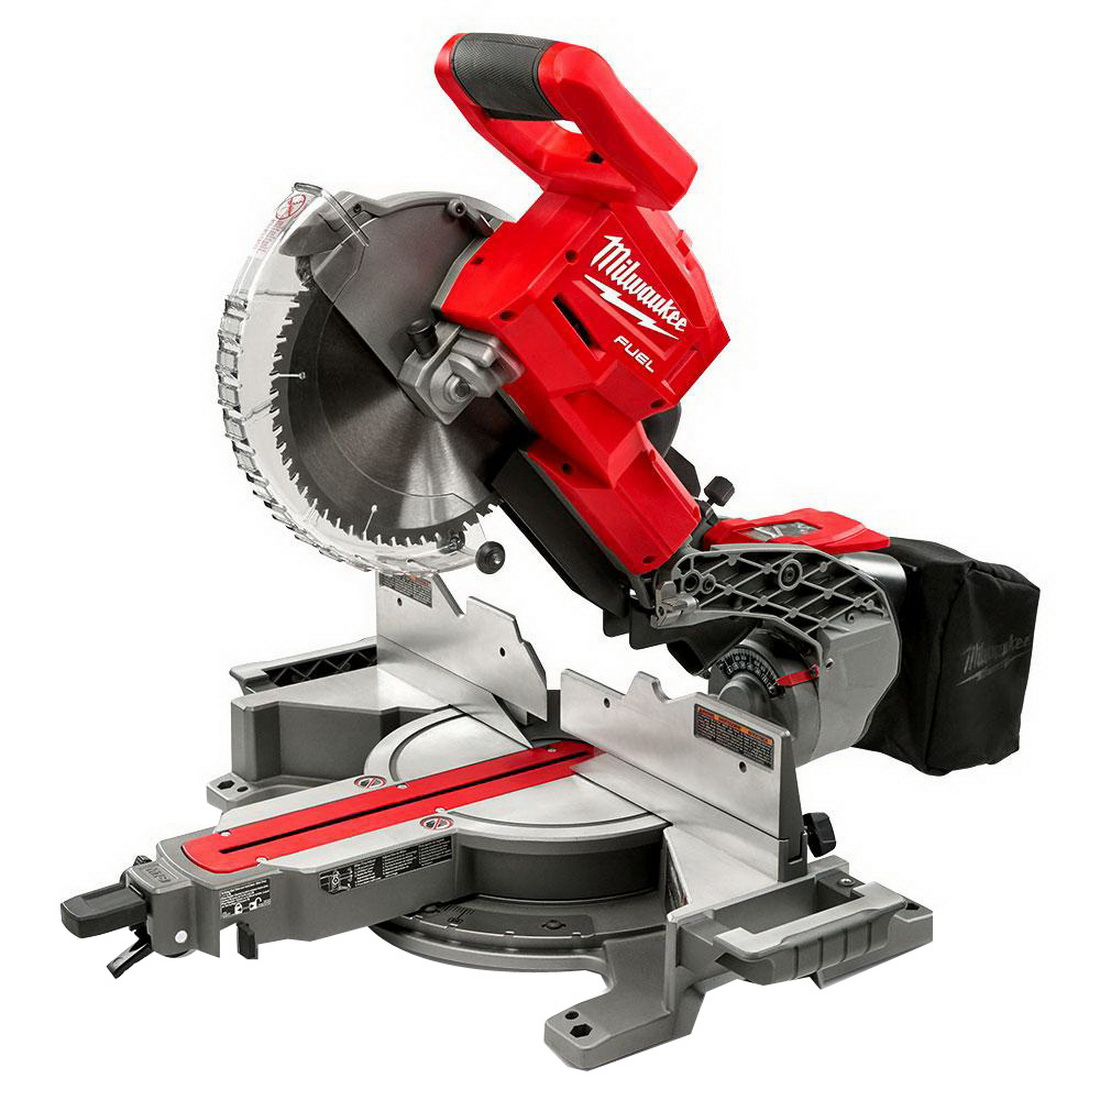 M18 FUEL REDLITHIUM Cordless Dual Bevel Sliding Compound Mitre Saw Skin Only 18V 254mm 4000rpm